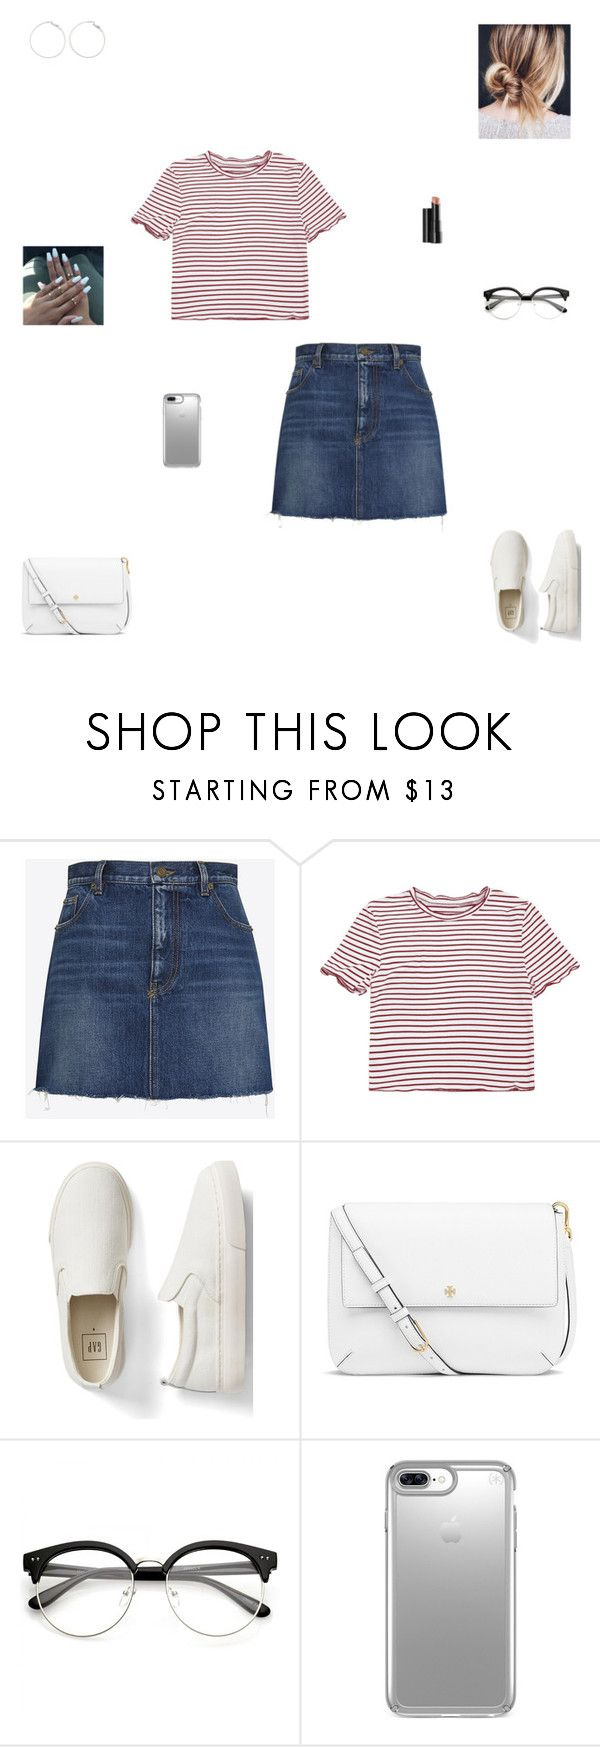 """casual day #27"" by synclairel ❤ liked on Polyvore featuring Yves Saint Laurent, Gap, Tory Burch, Arbonne, Speck, Summer, cute, casual and ootd"